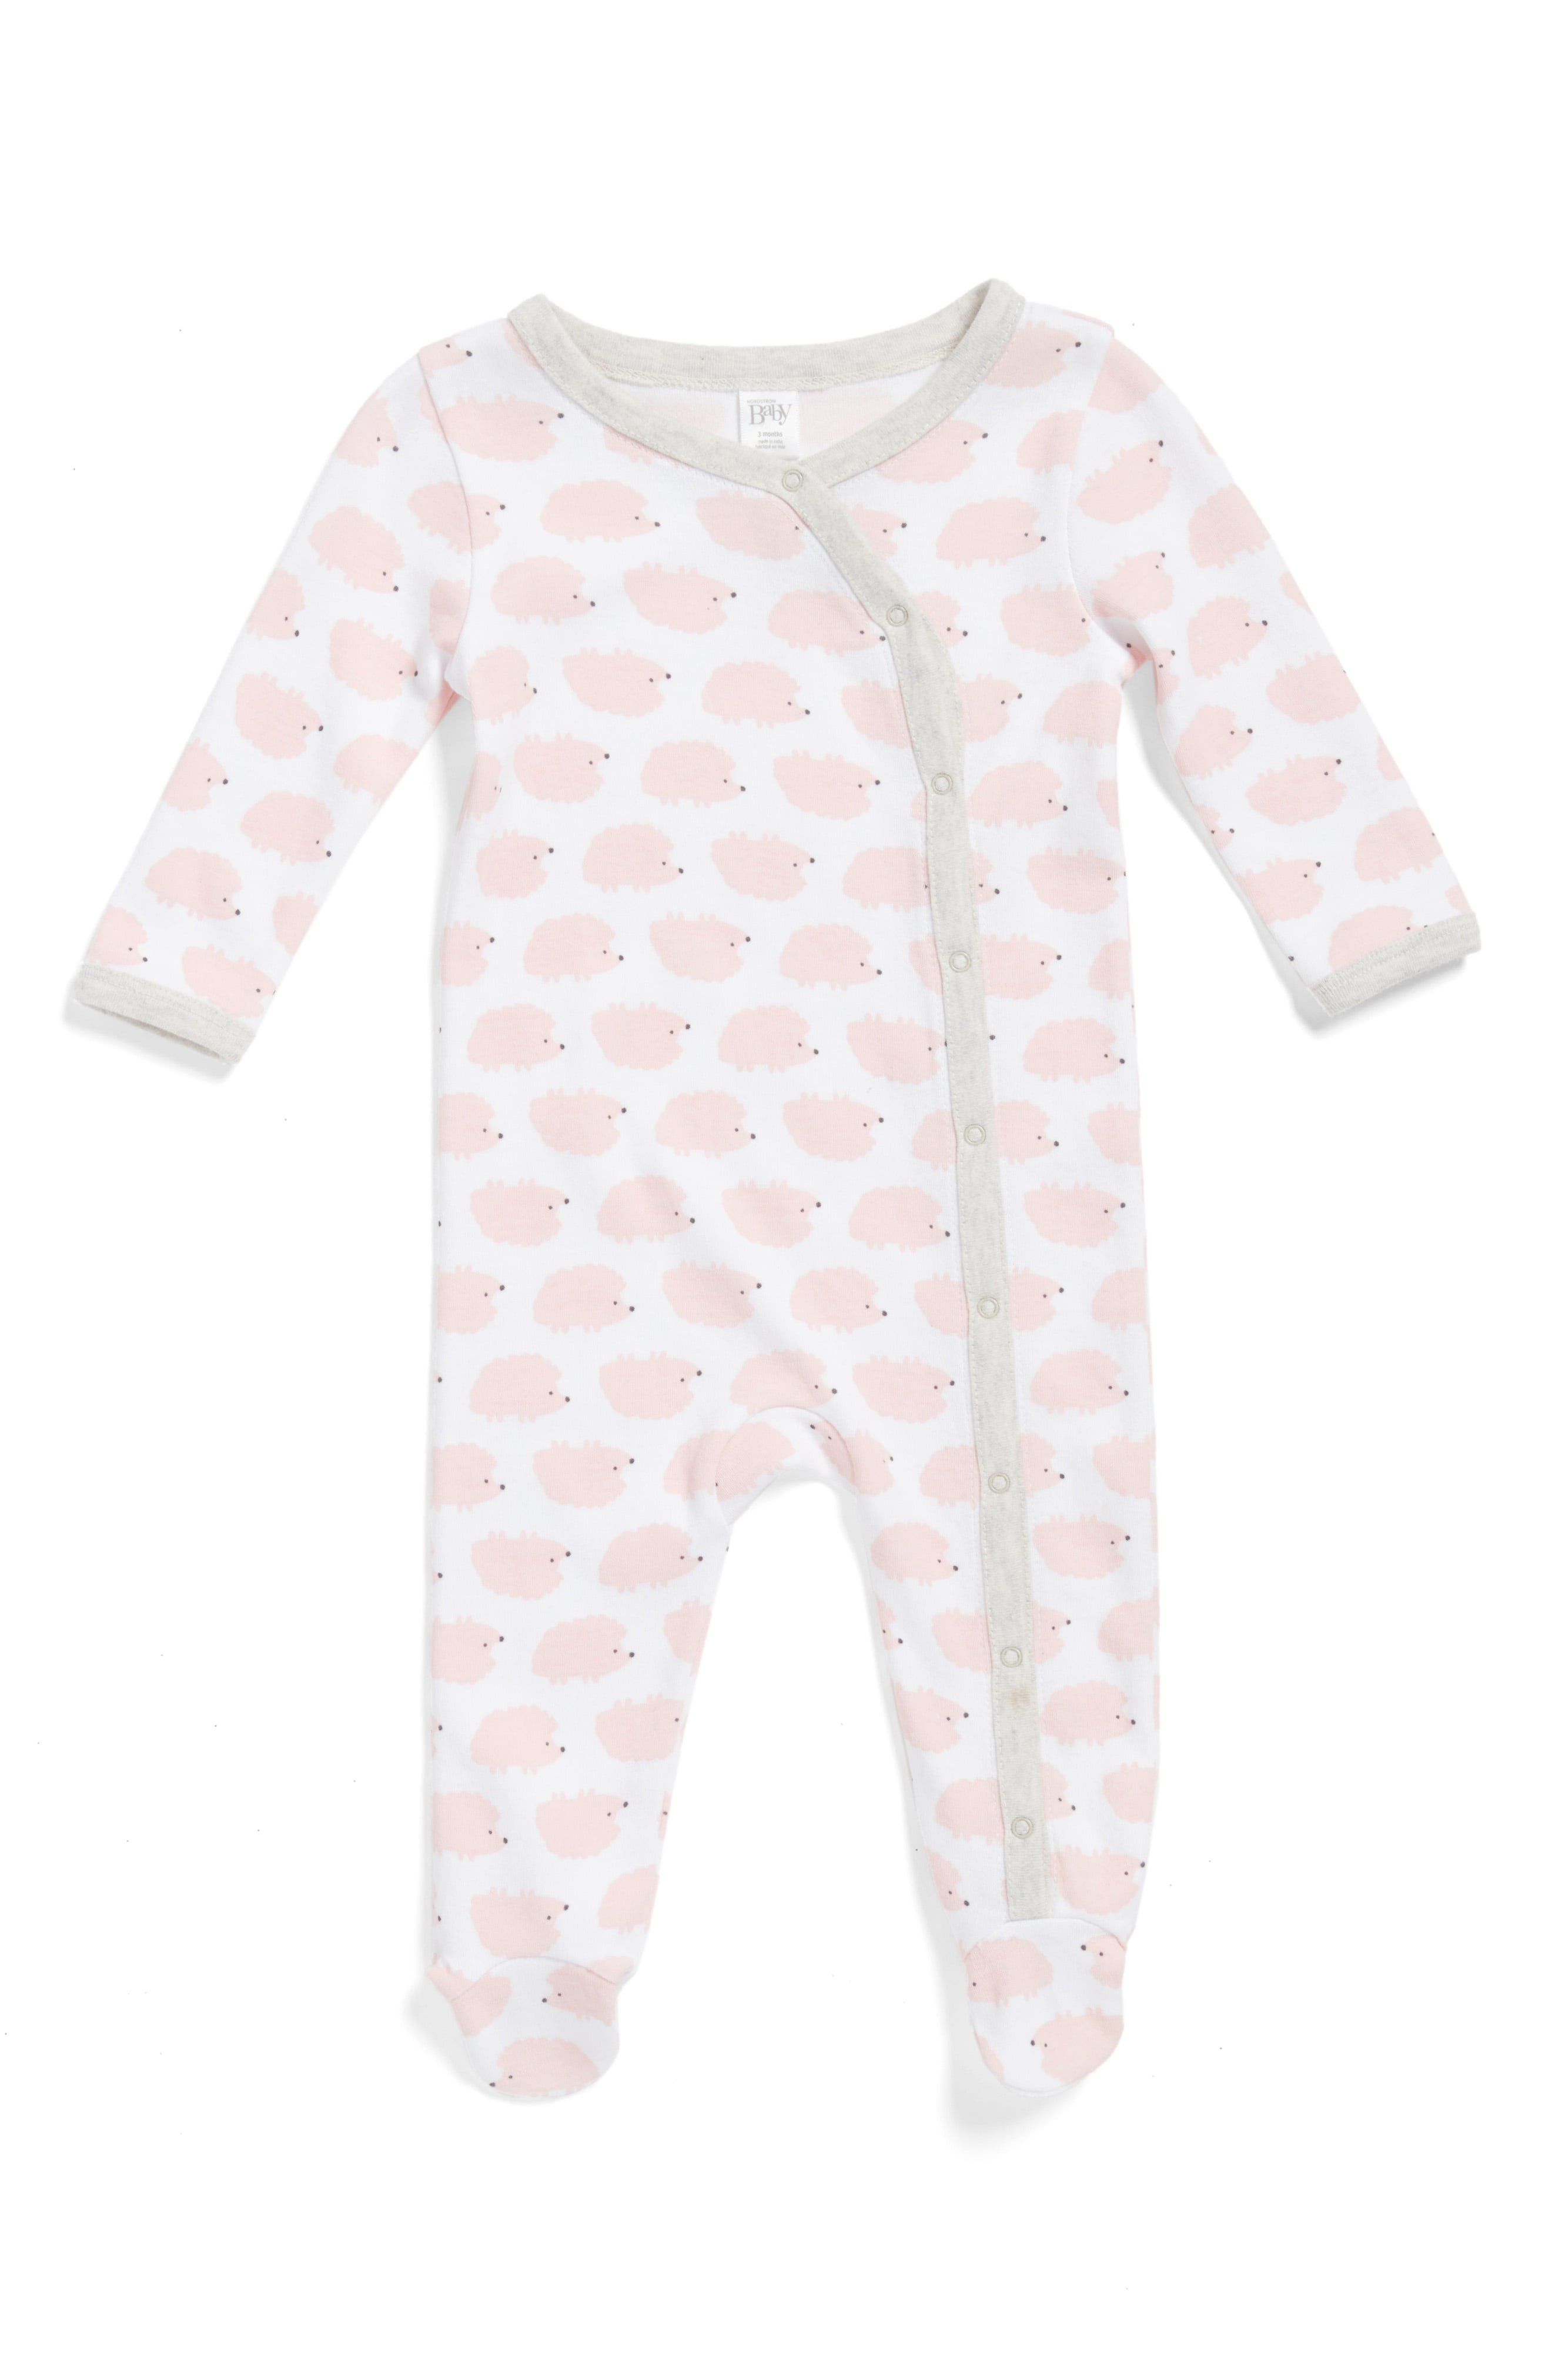 d6c35ff1460 Black Friday Baby Deals 2017  Nordstrom Baby Markdowns